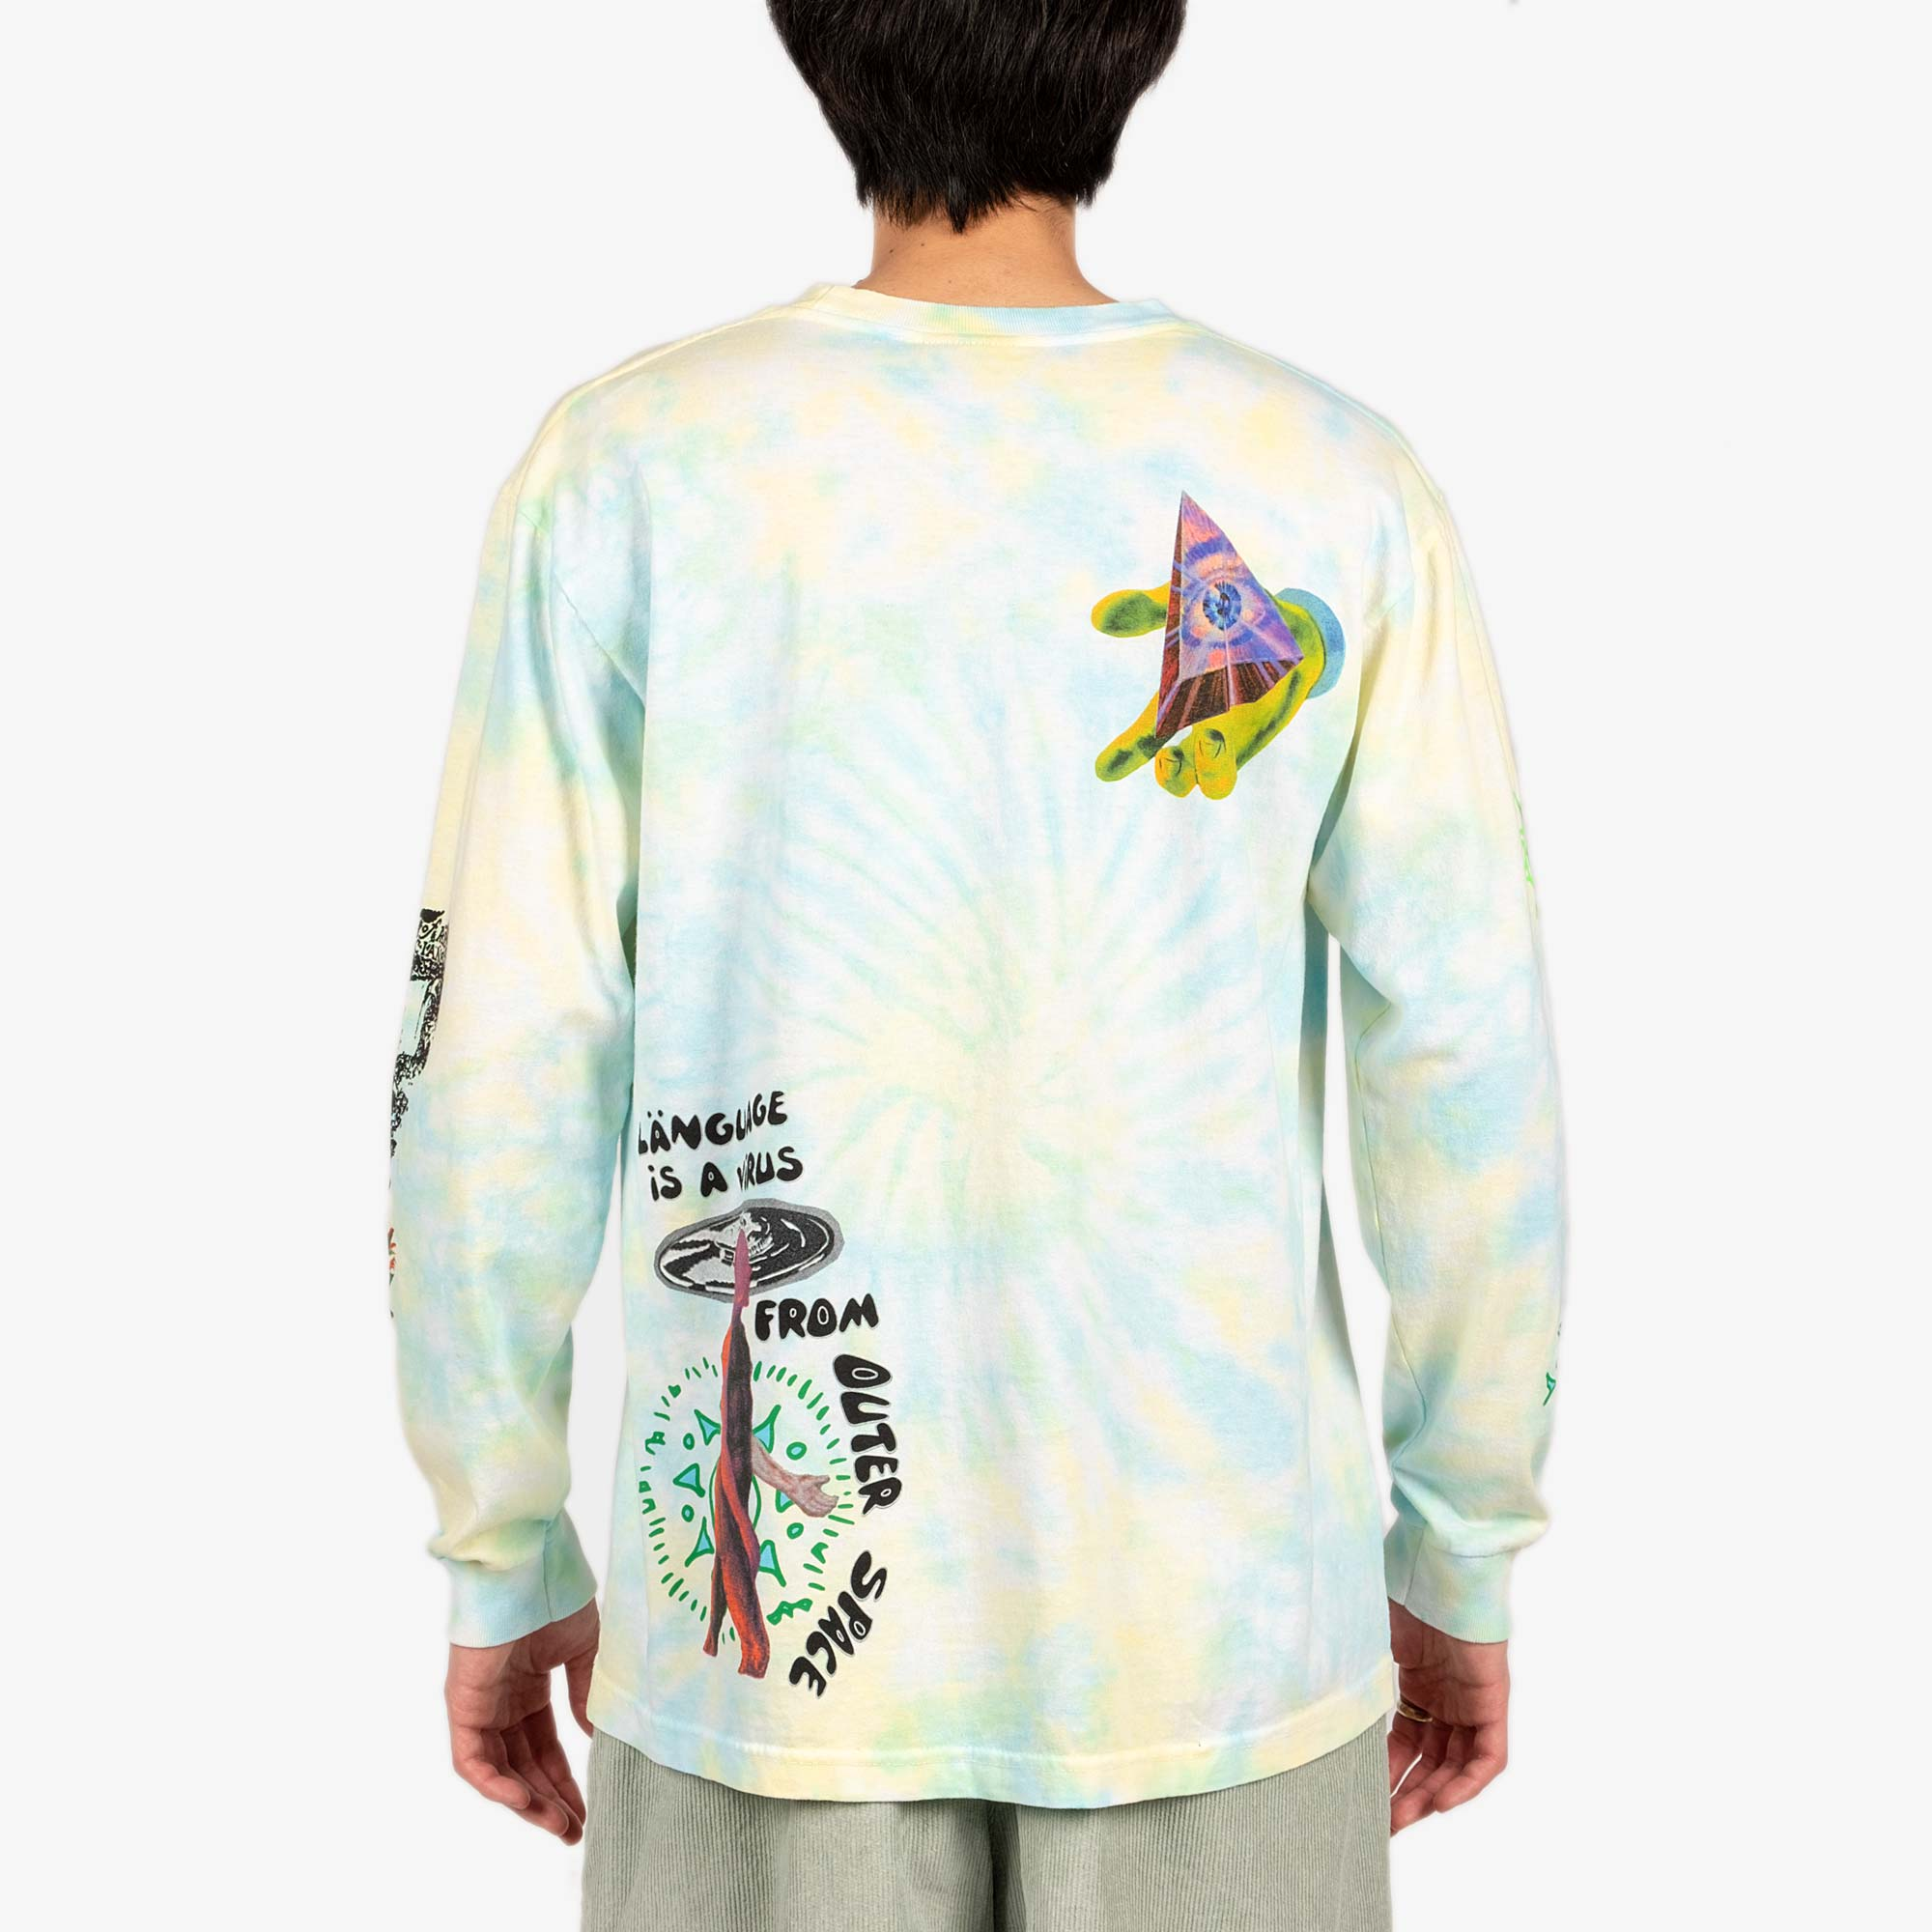 Real Bad Man From Outer Space LS Tee - Aqua / Yellow 8